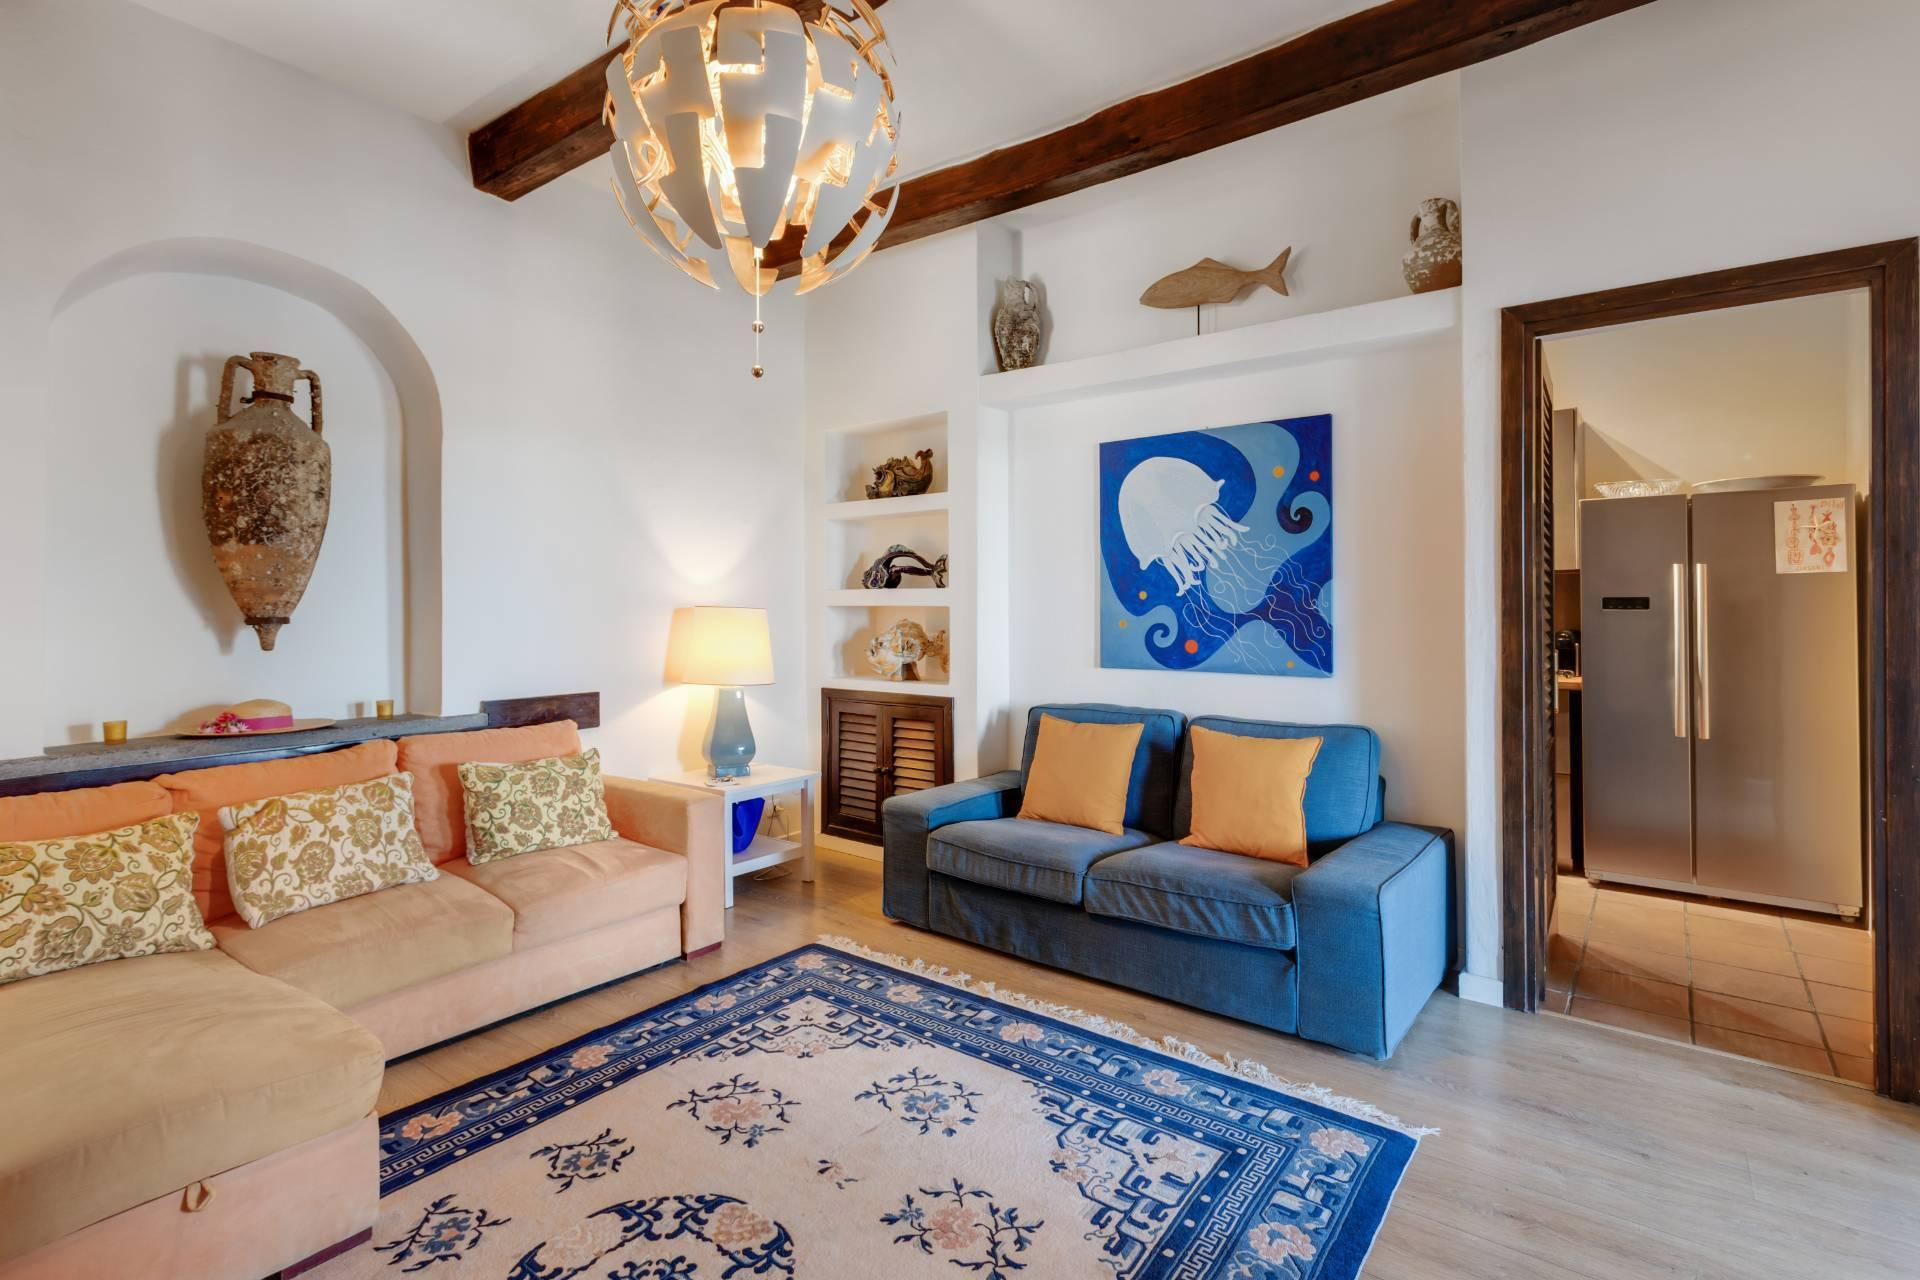 Porto Ercole - Stunning seafront family home with amazing views in historic building - 13